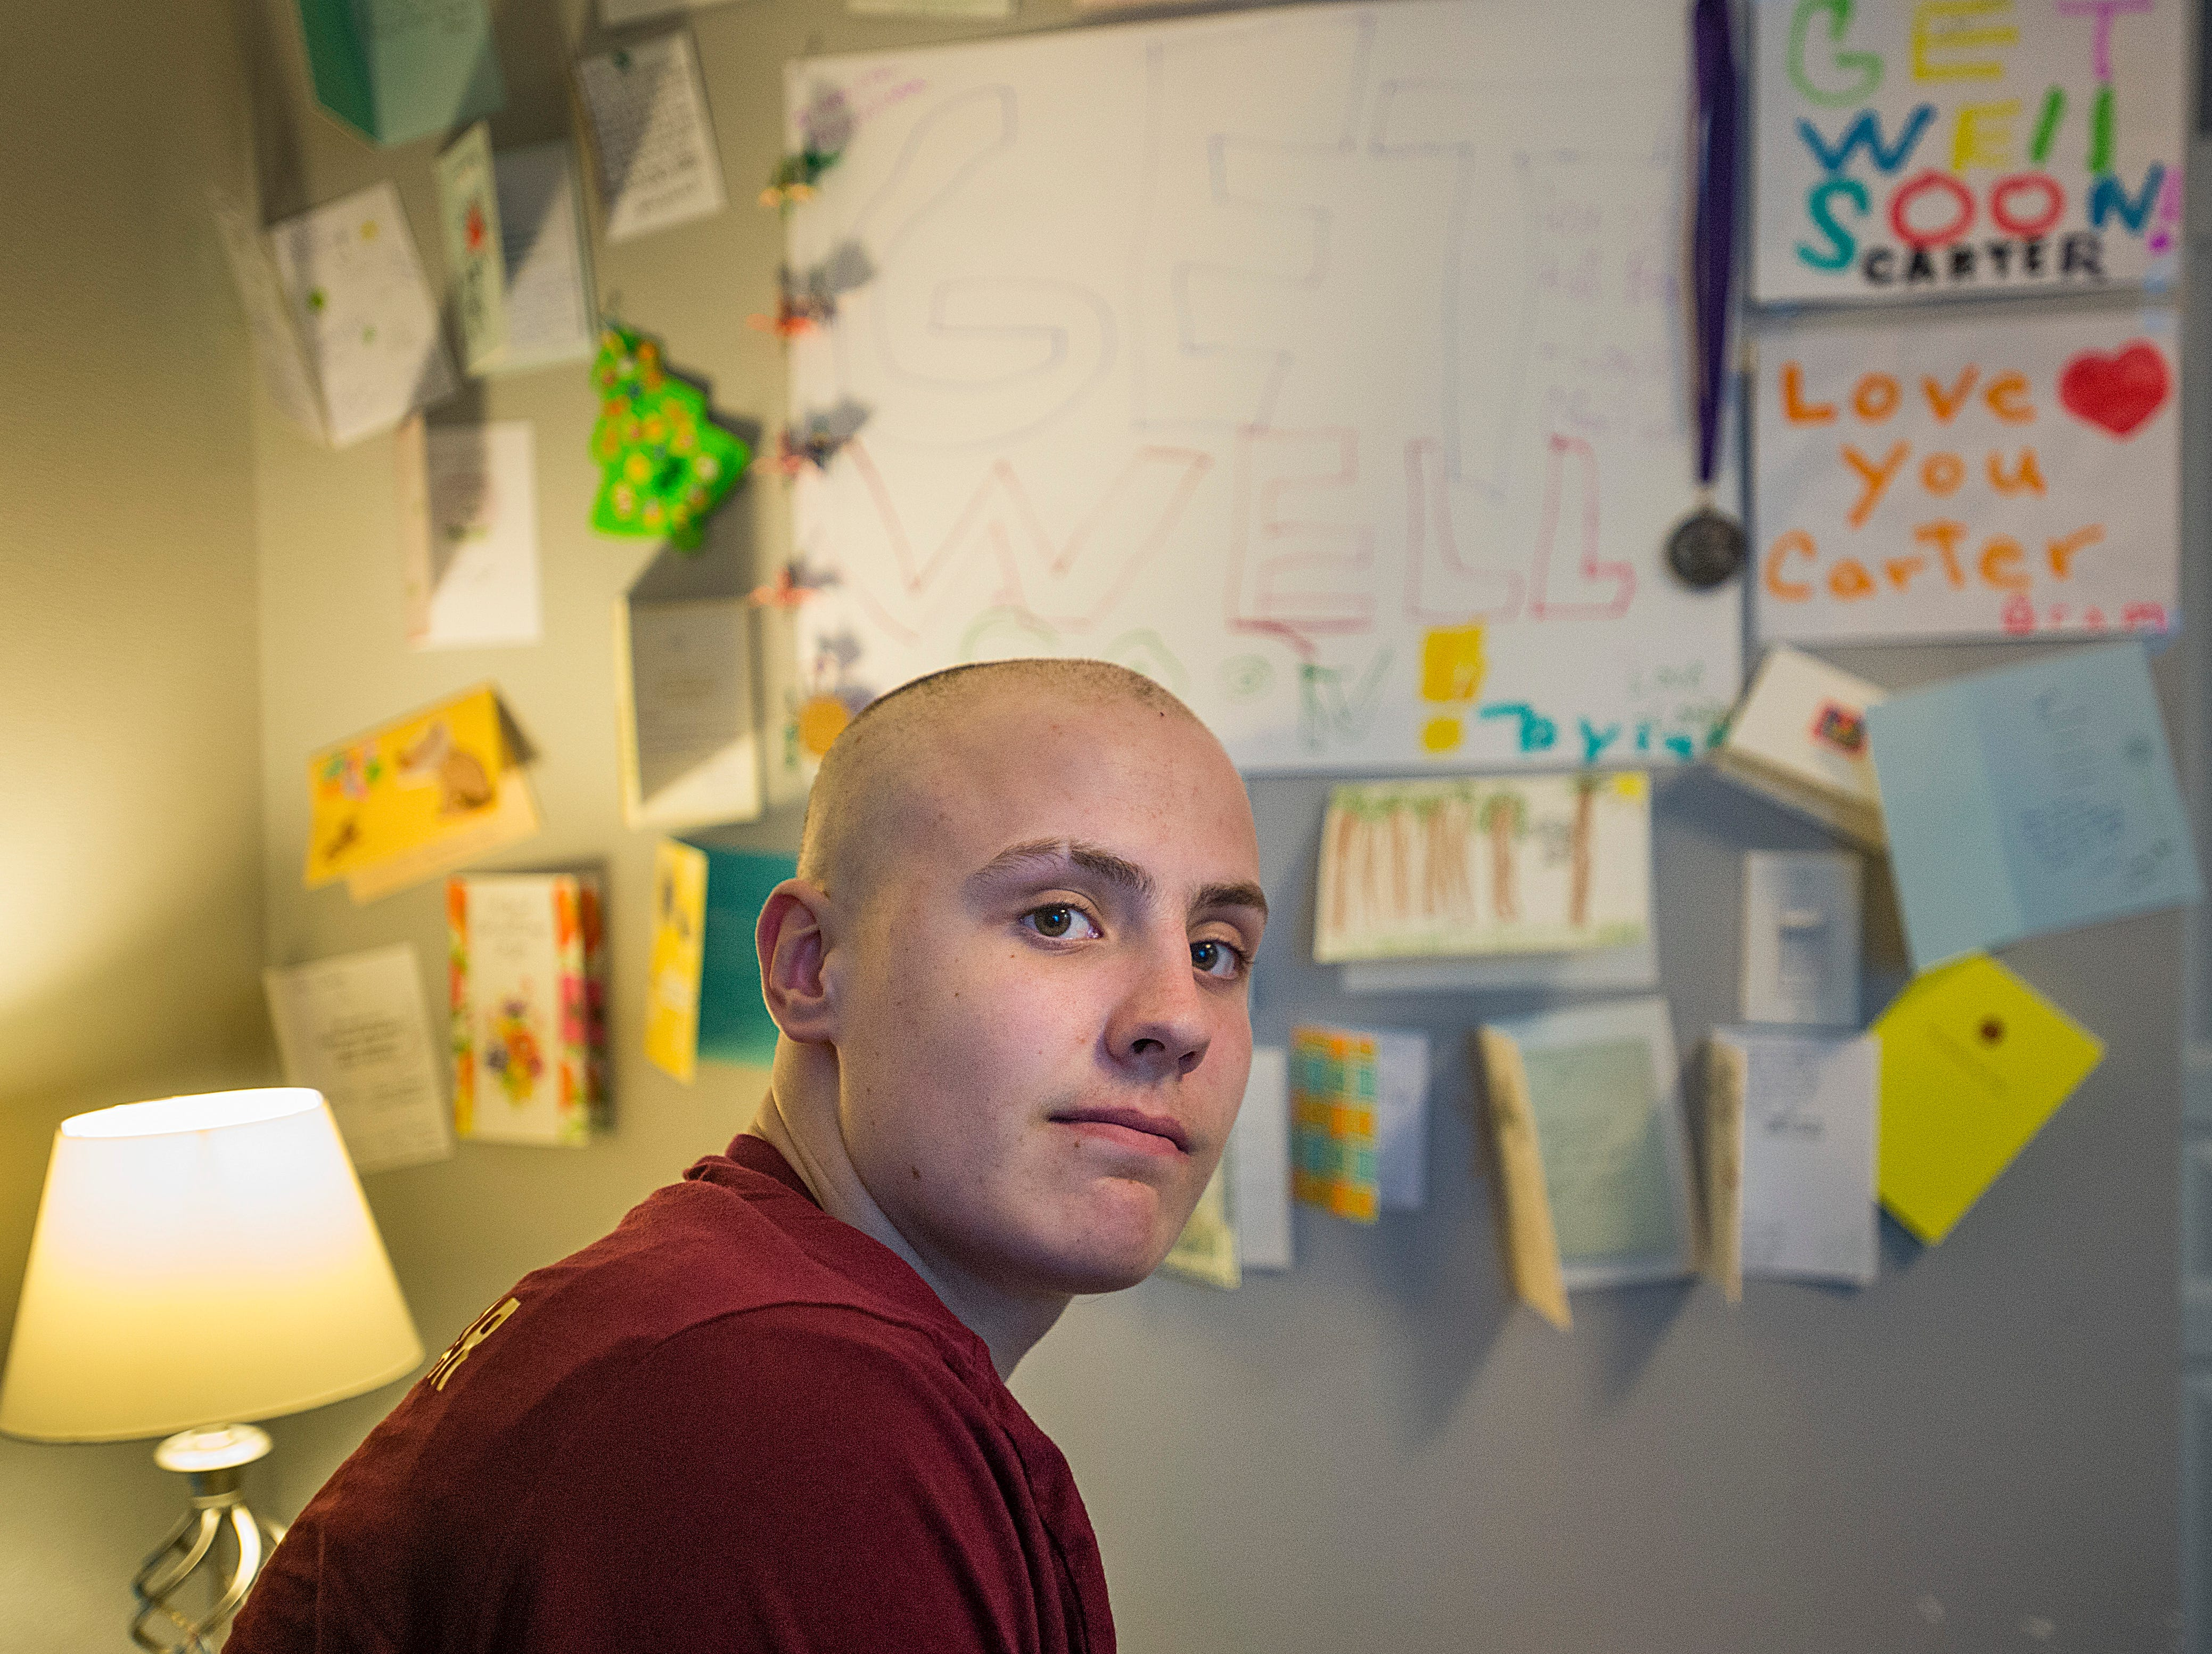 Carter Edgerley, 17, poses for a photo in front of the many cards showing support for his fight against cancer in his room on Tuesday, January 8, 2019.